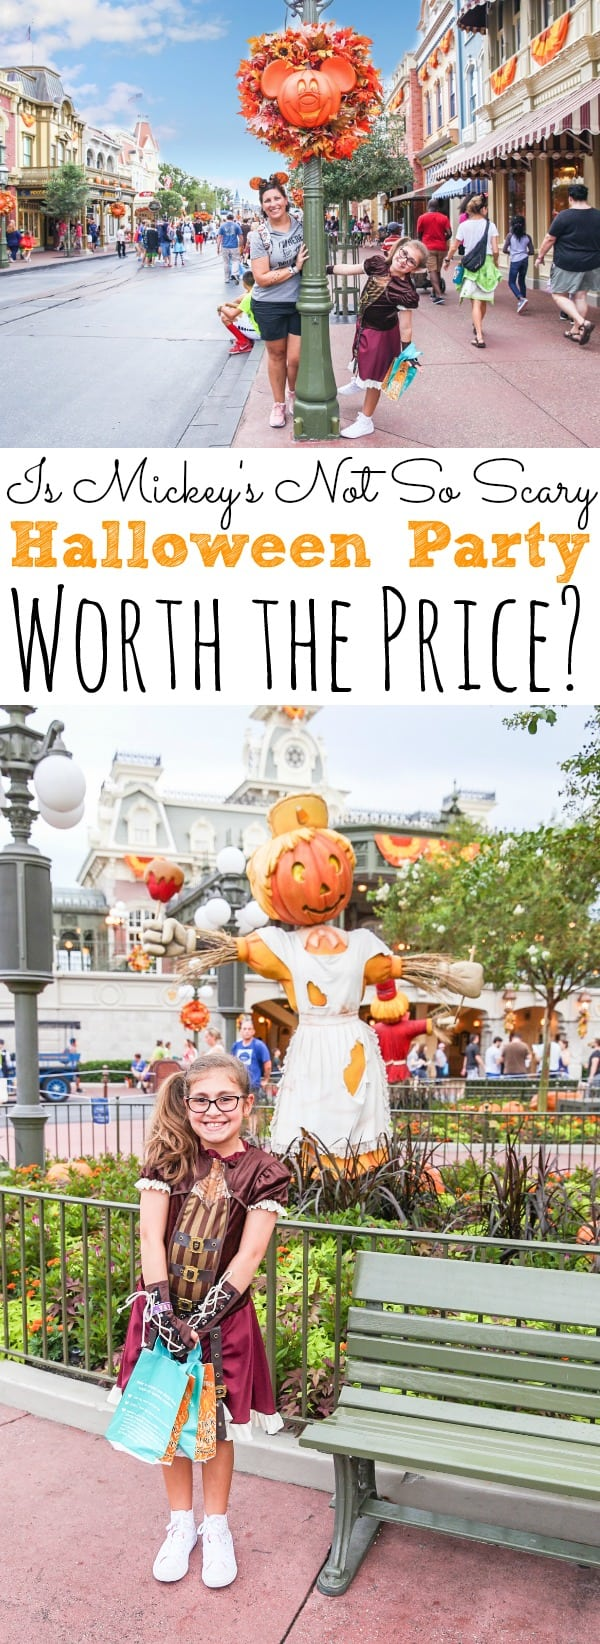 Is Mickey's Not So Scary Halloween Party Worth The Price?